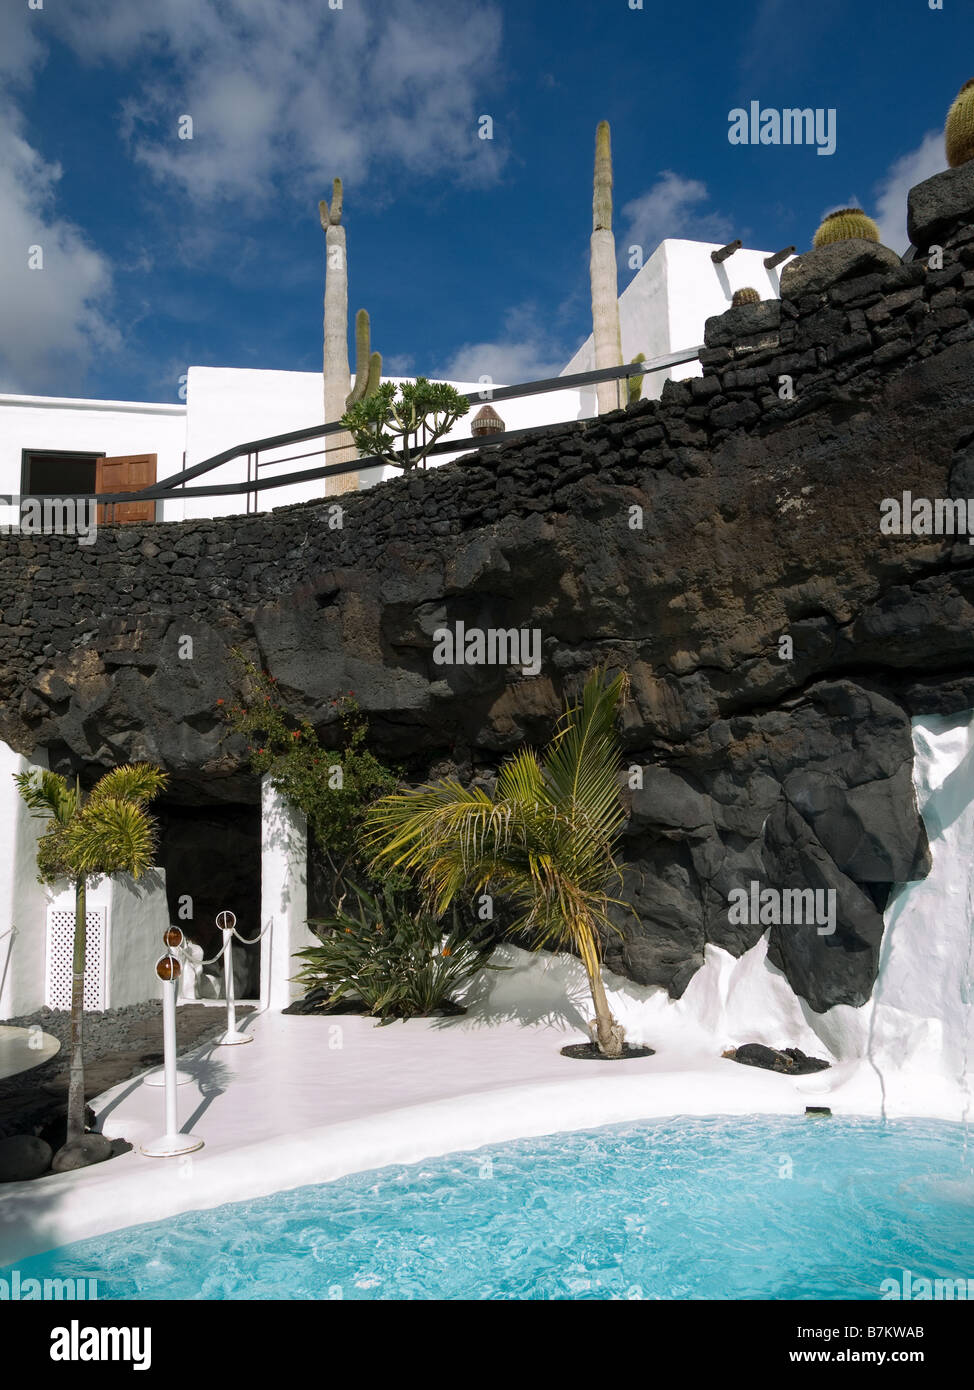 The swimming pool area in a volcanic bubble at the Cesar Manrique ...